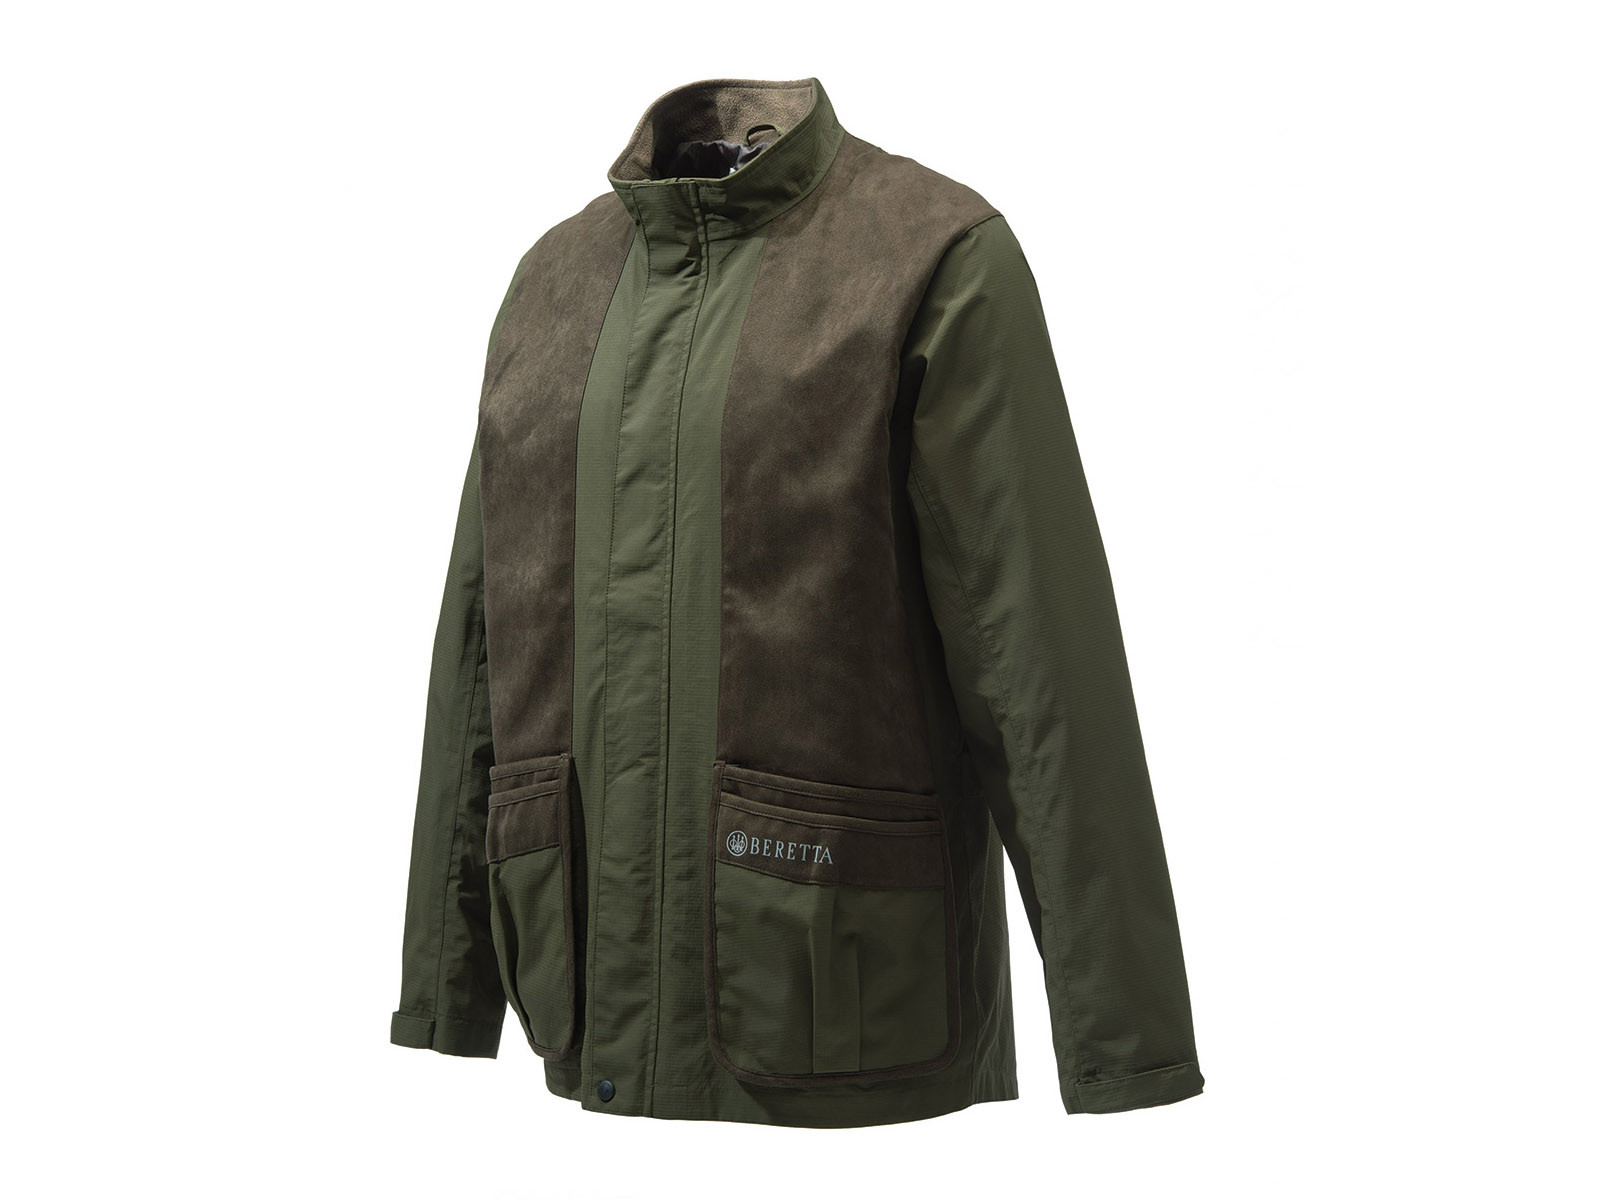 Beretta Sporting Teal Jacket - Green